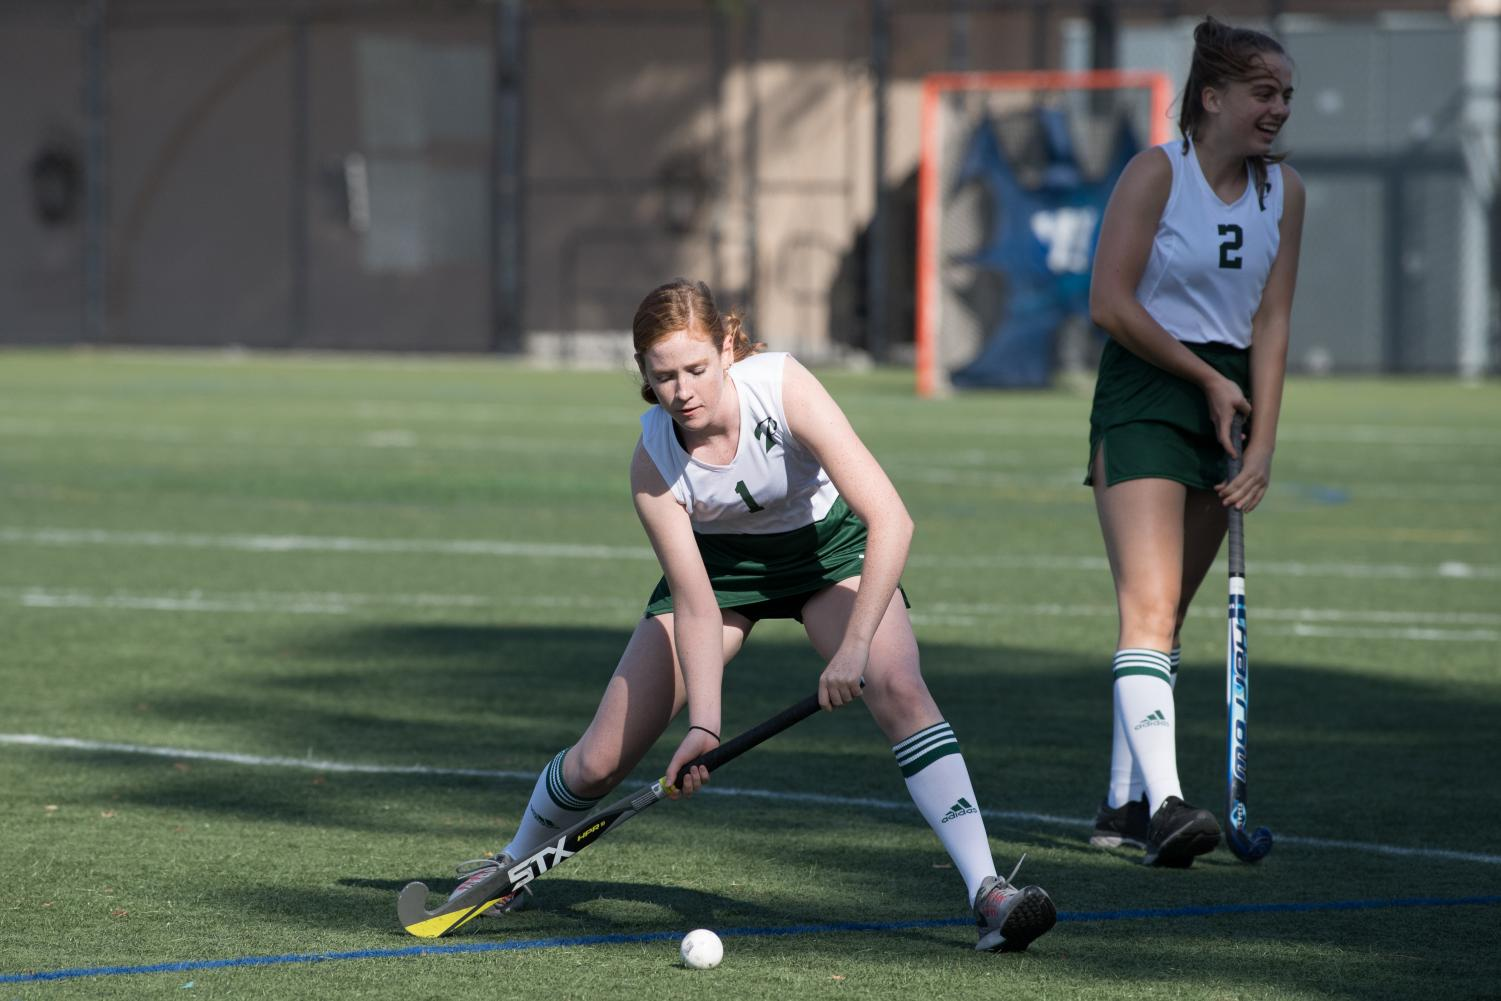 Georgia Cowie ('20) prepares herself for action, getting ready to send the ball into the goal.